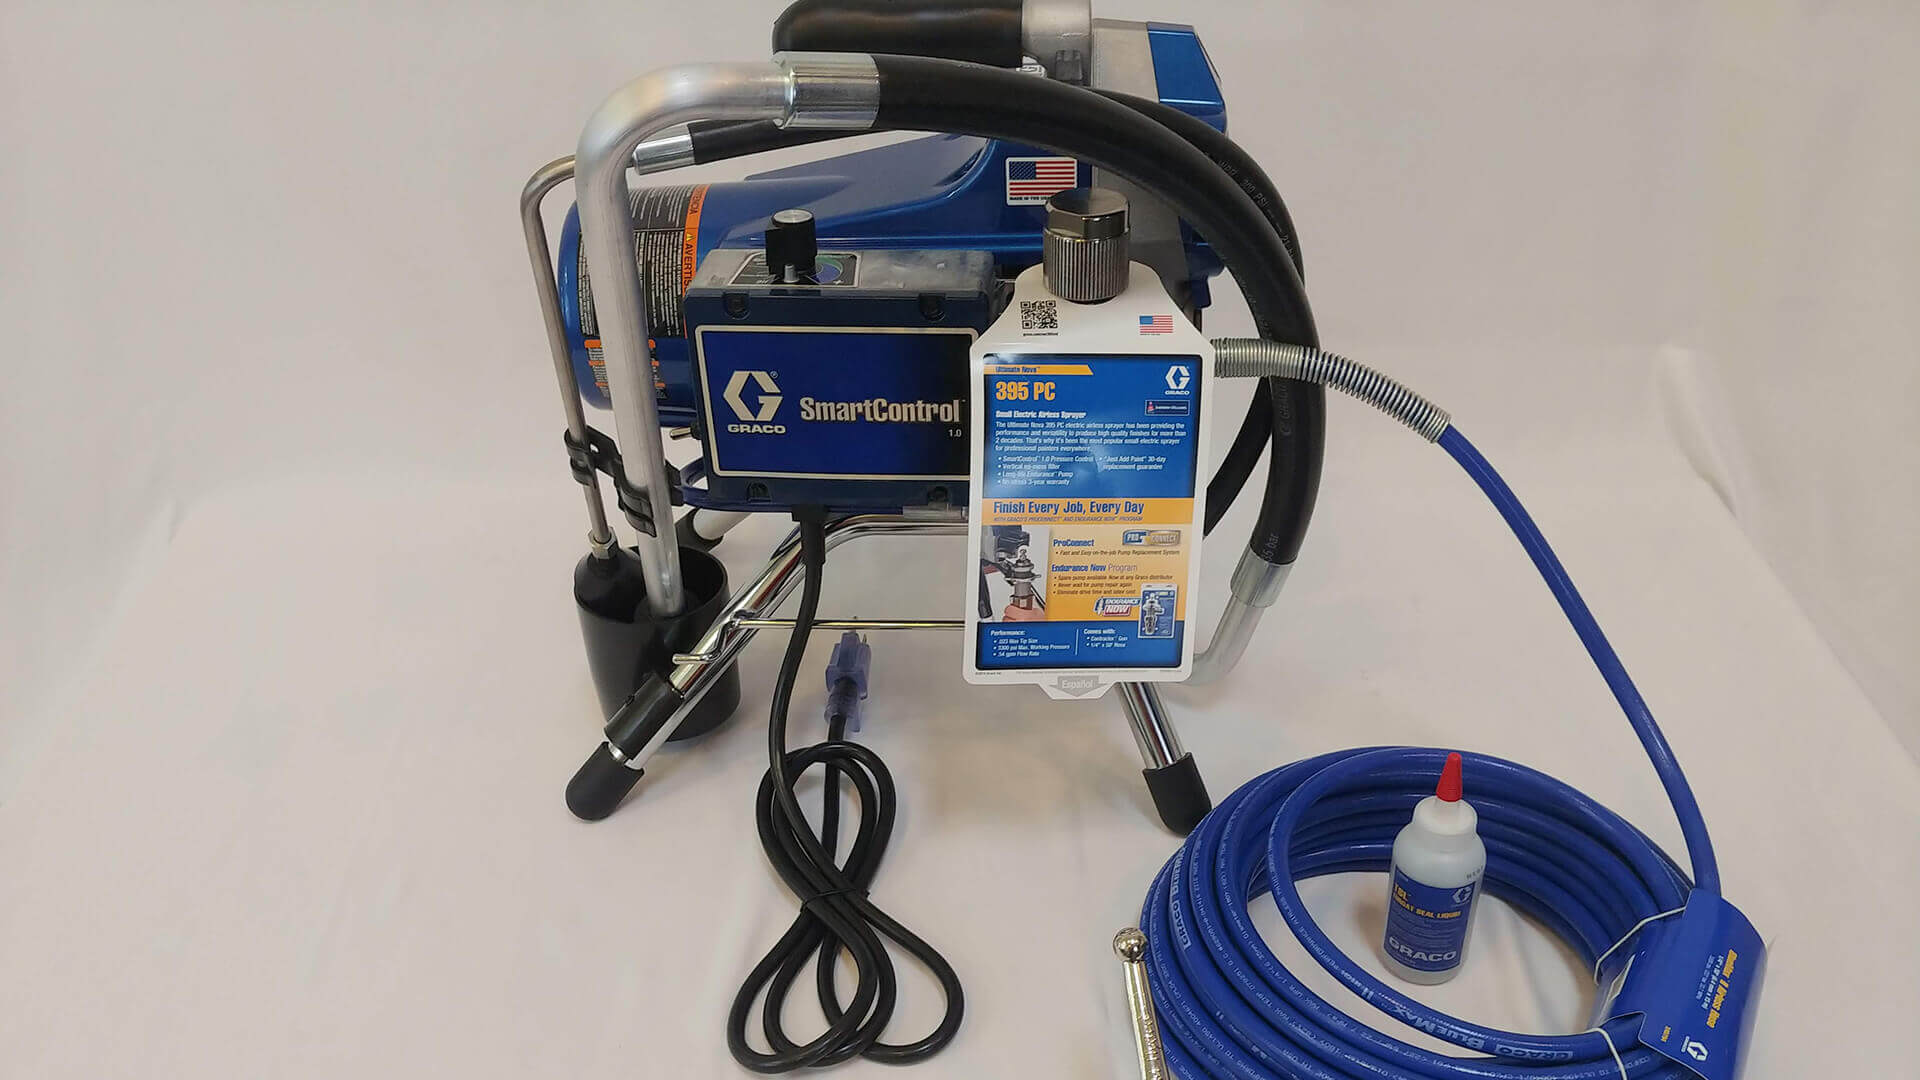 Accessories Equipment Graco Pipe Cleaning